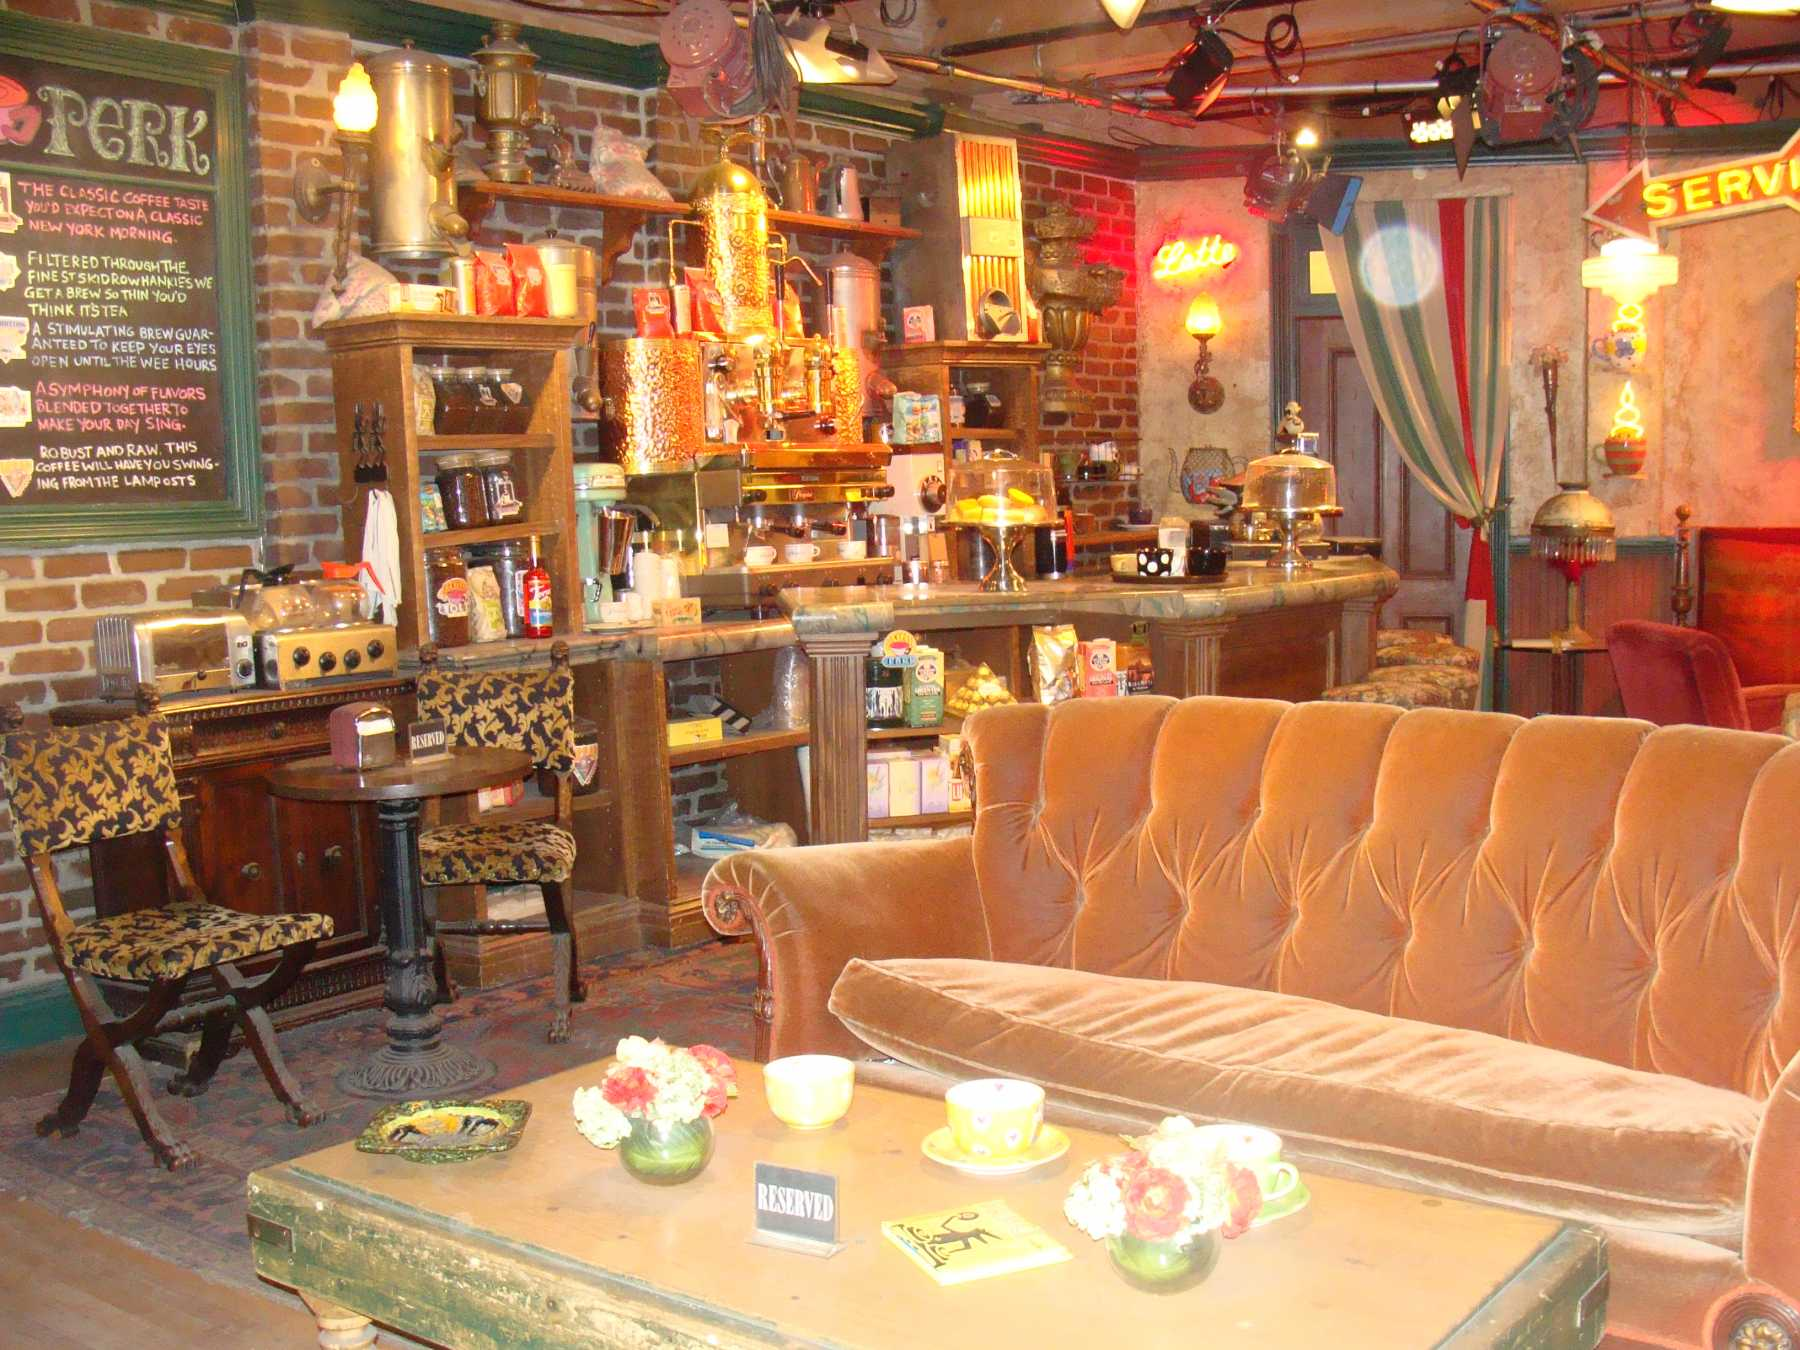 FRIENDS Twentieth Anniversary Inspires Pop-Up Central Perk | FRIENDS